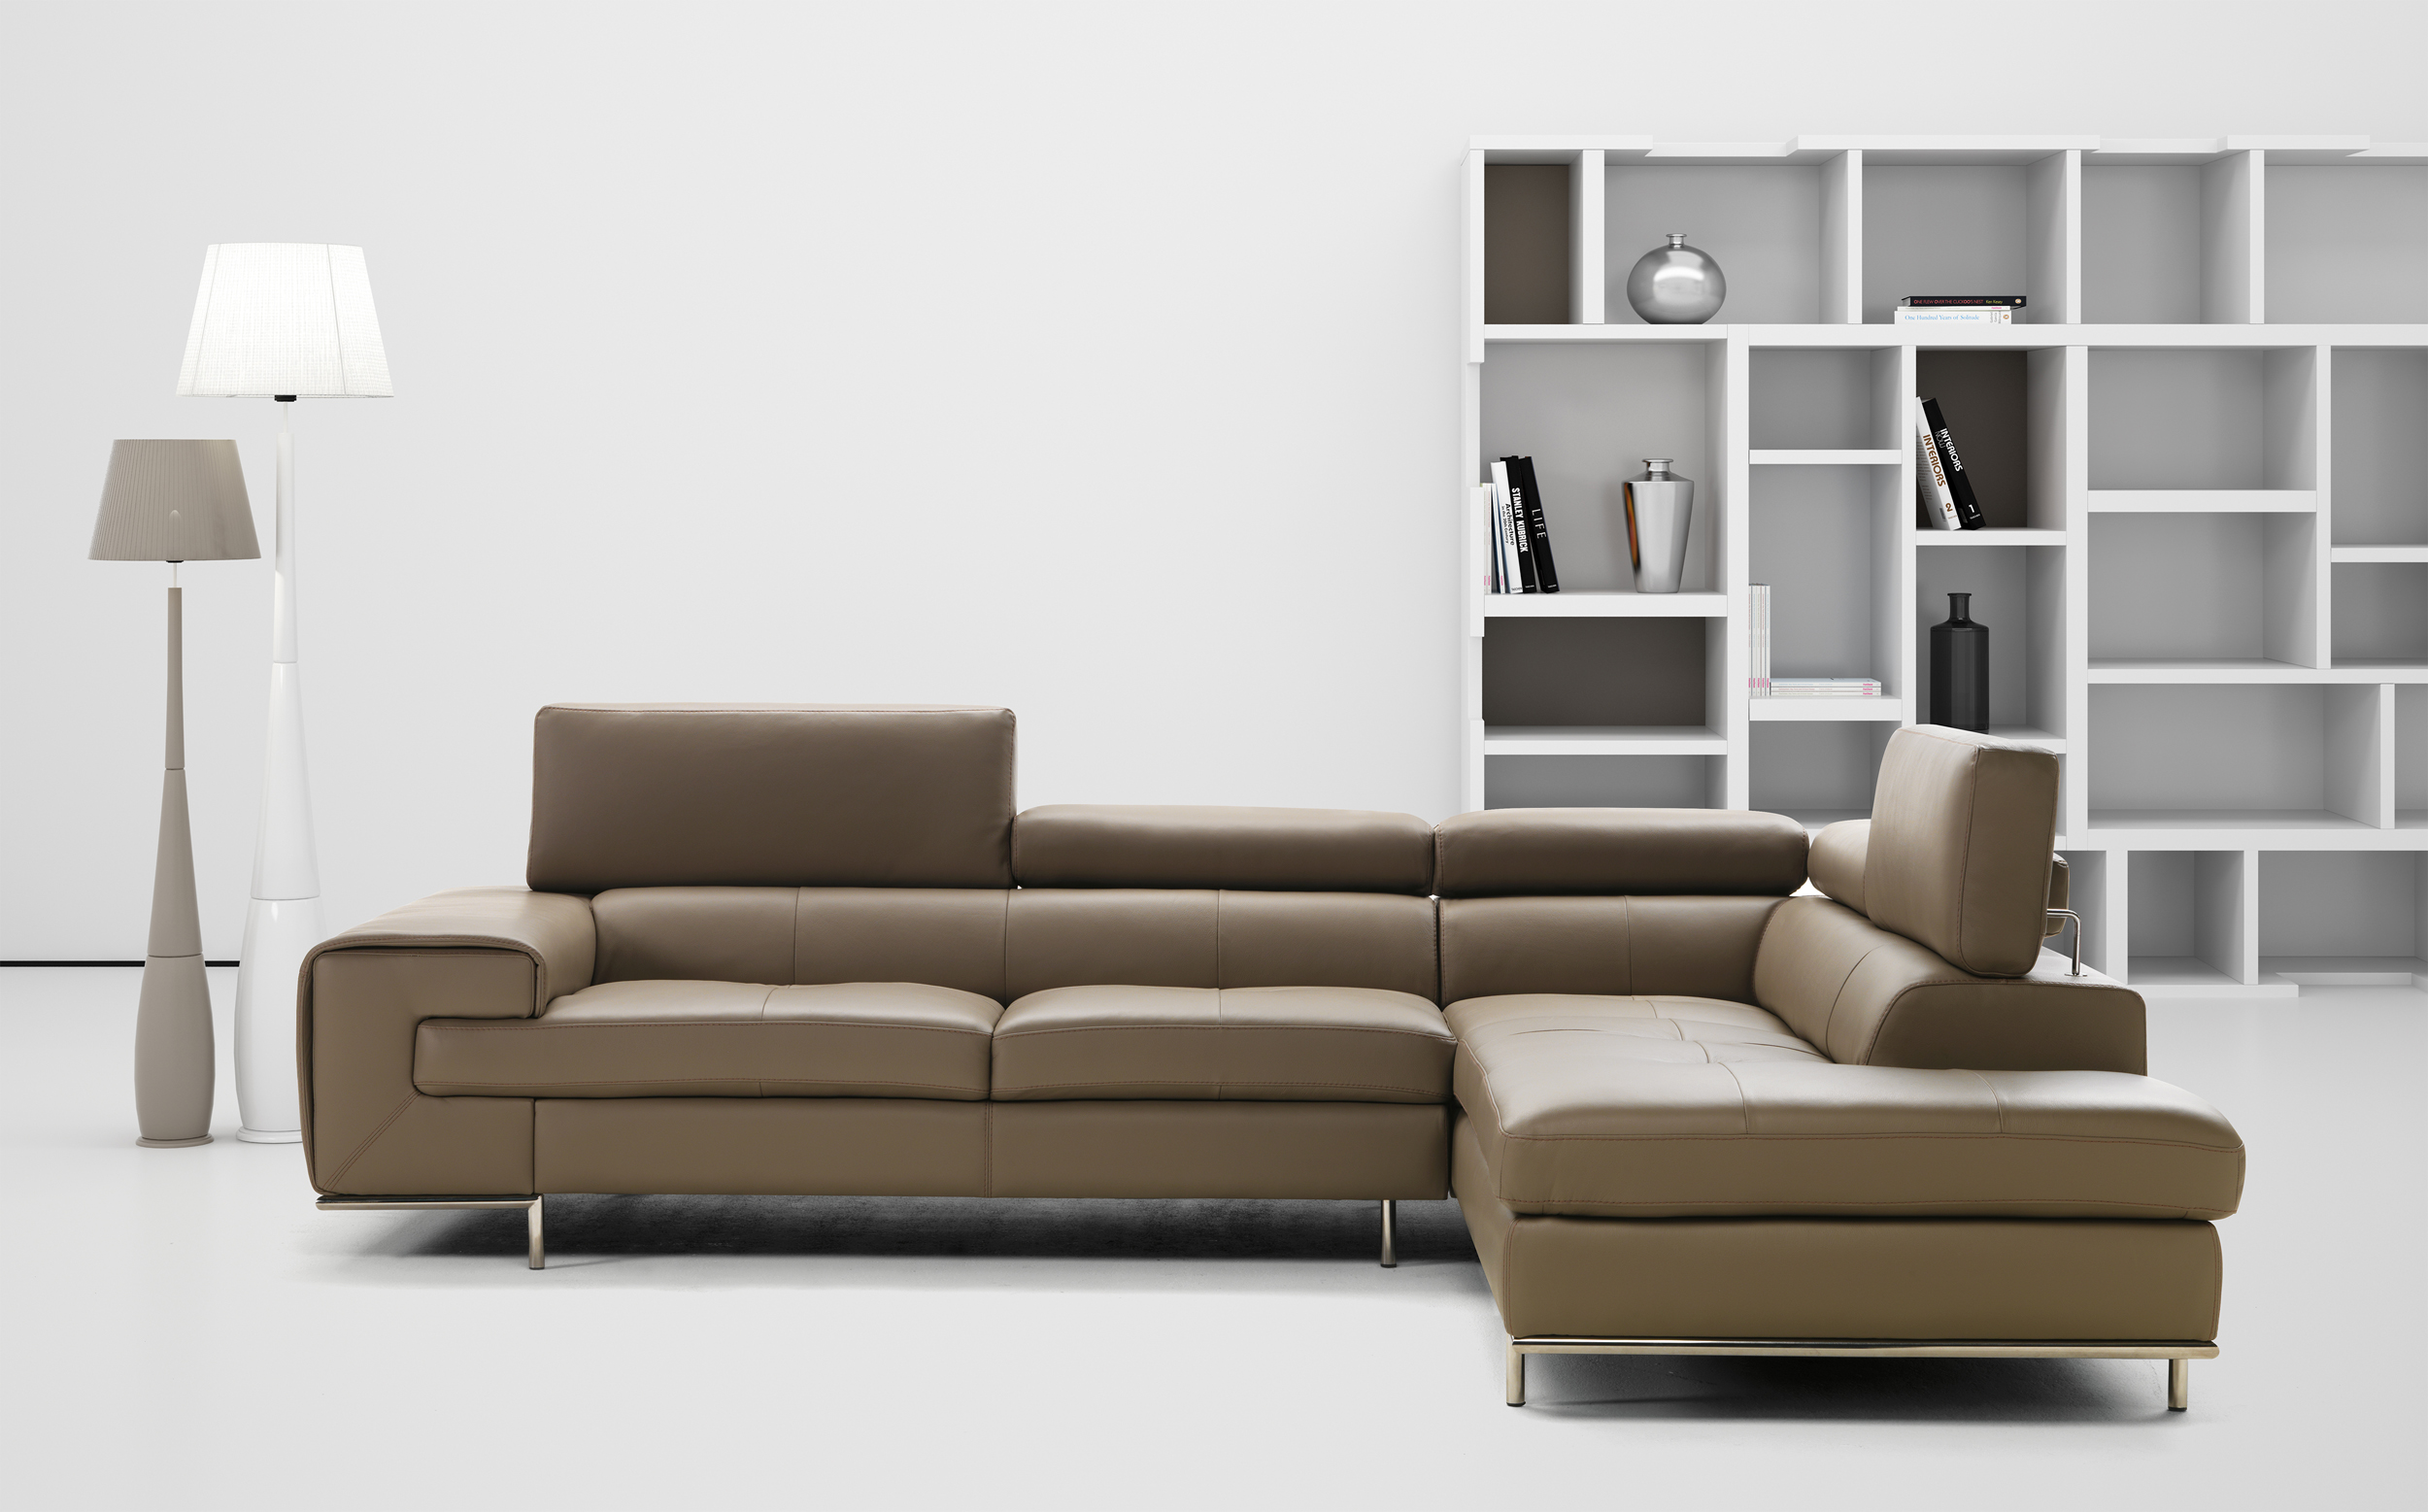 room ideas cheap home gray modern full genuine grey sleeper couches fill grain decorating with leather chaise seated sect sectional costco living comfy your for deep sofa sectionals furniture